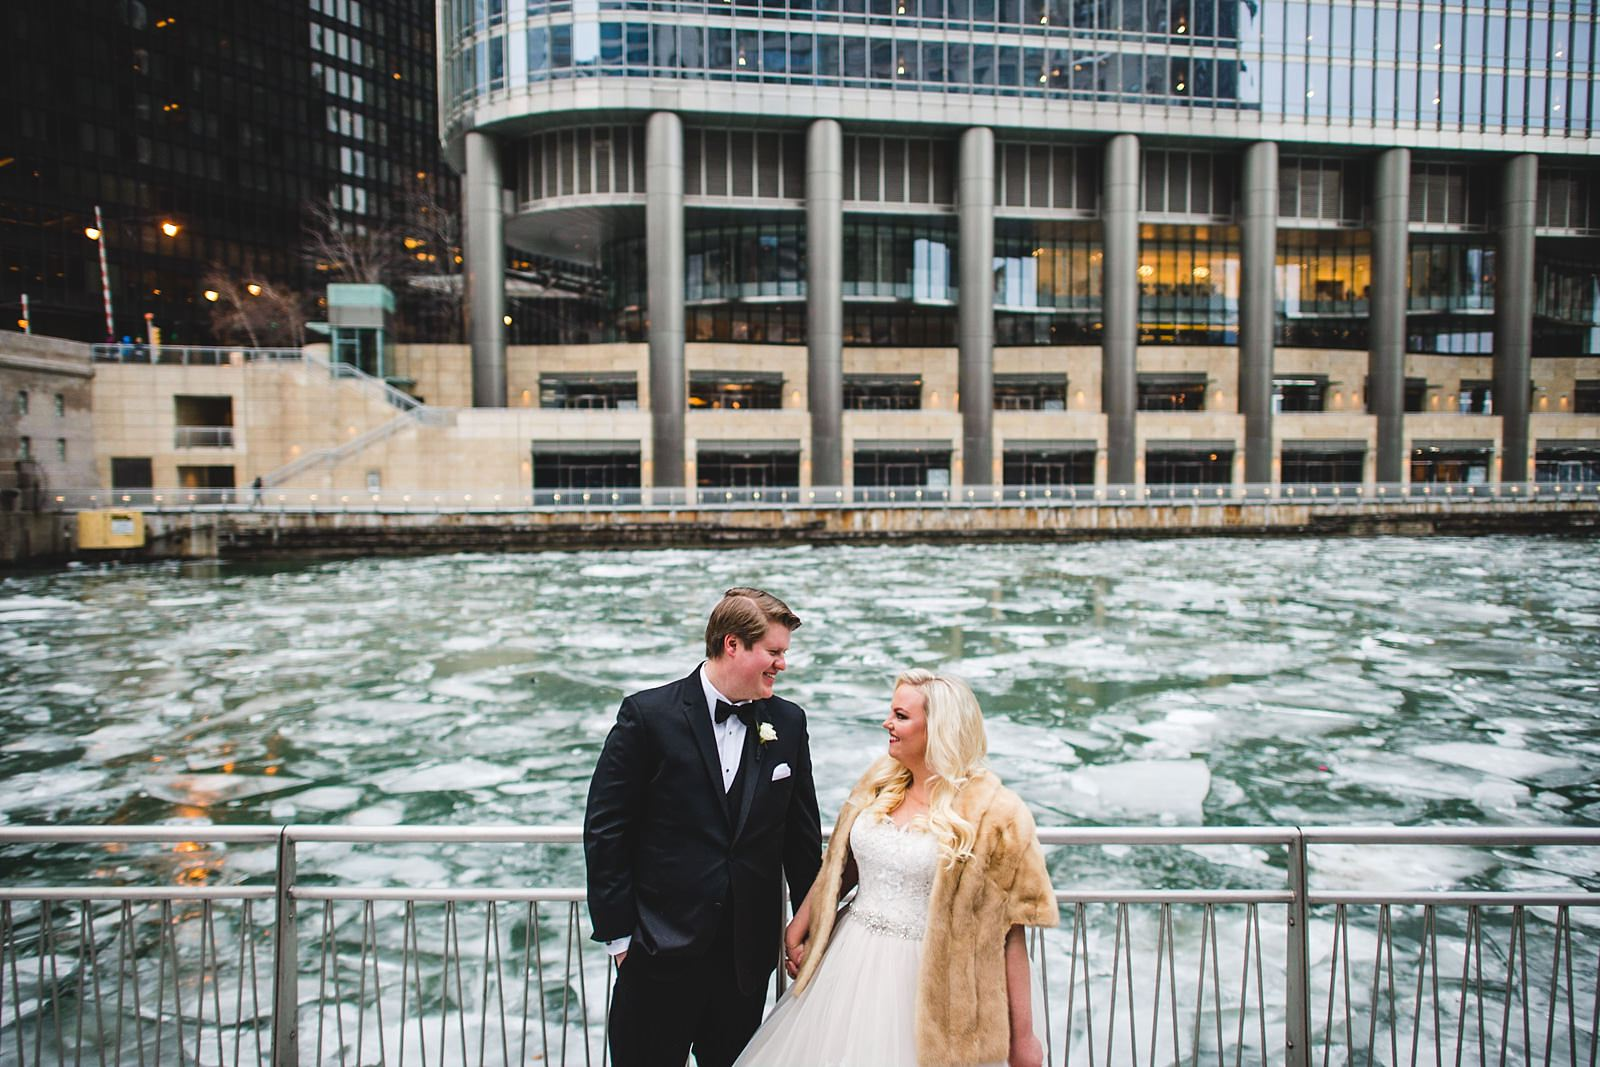 13 winter chicago wedding photos - Drake Chicago Luxury Wedding Photography // Kate + Royce